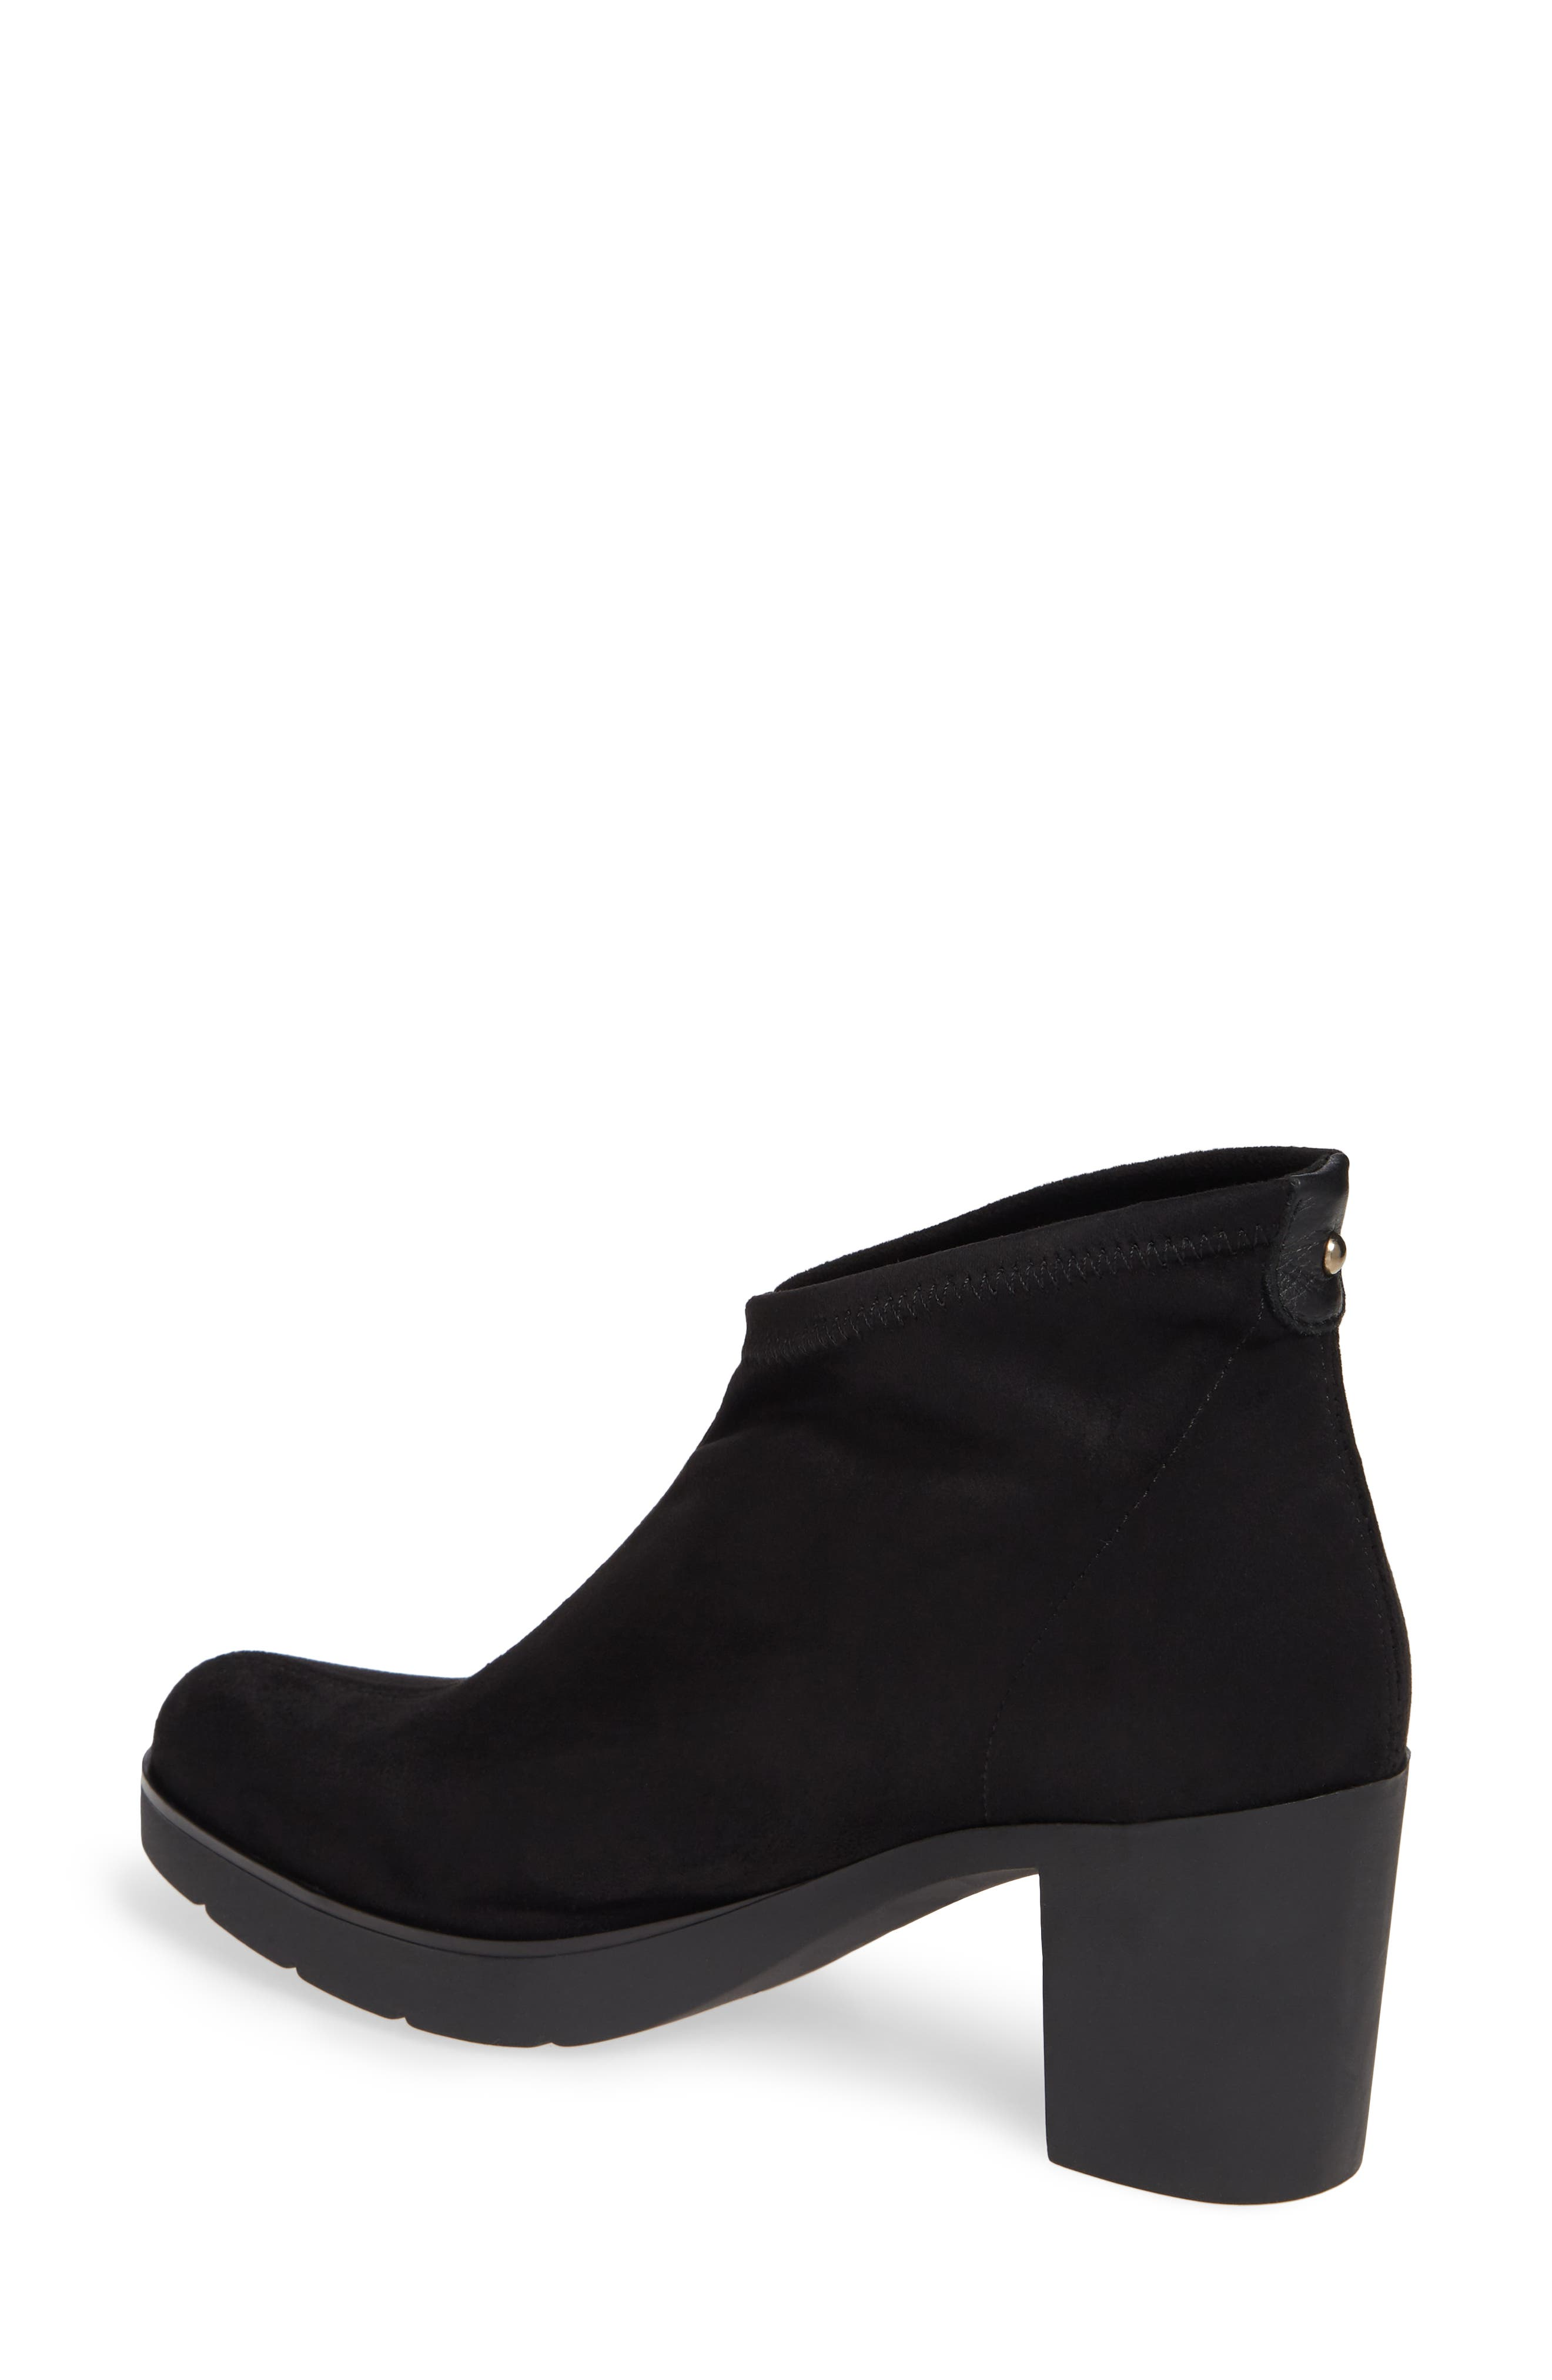 'Finley' Bootie,                             Alternate thumbnail 2, color,                             BLACK/ BLACK FABRIC